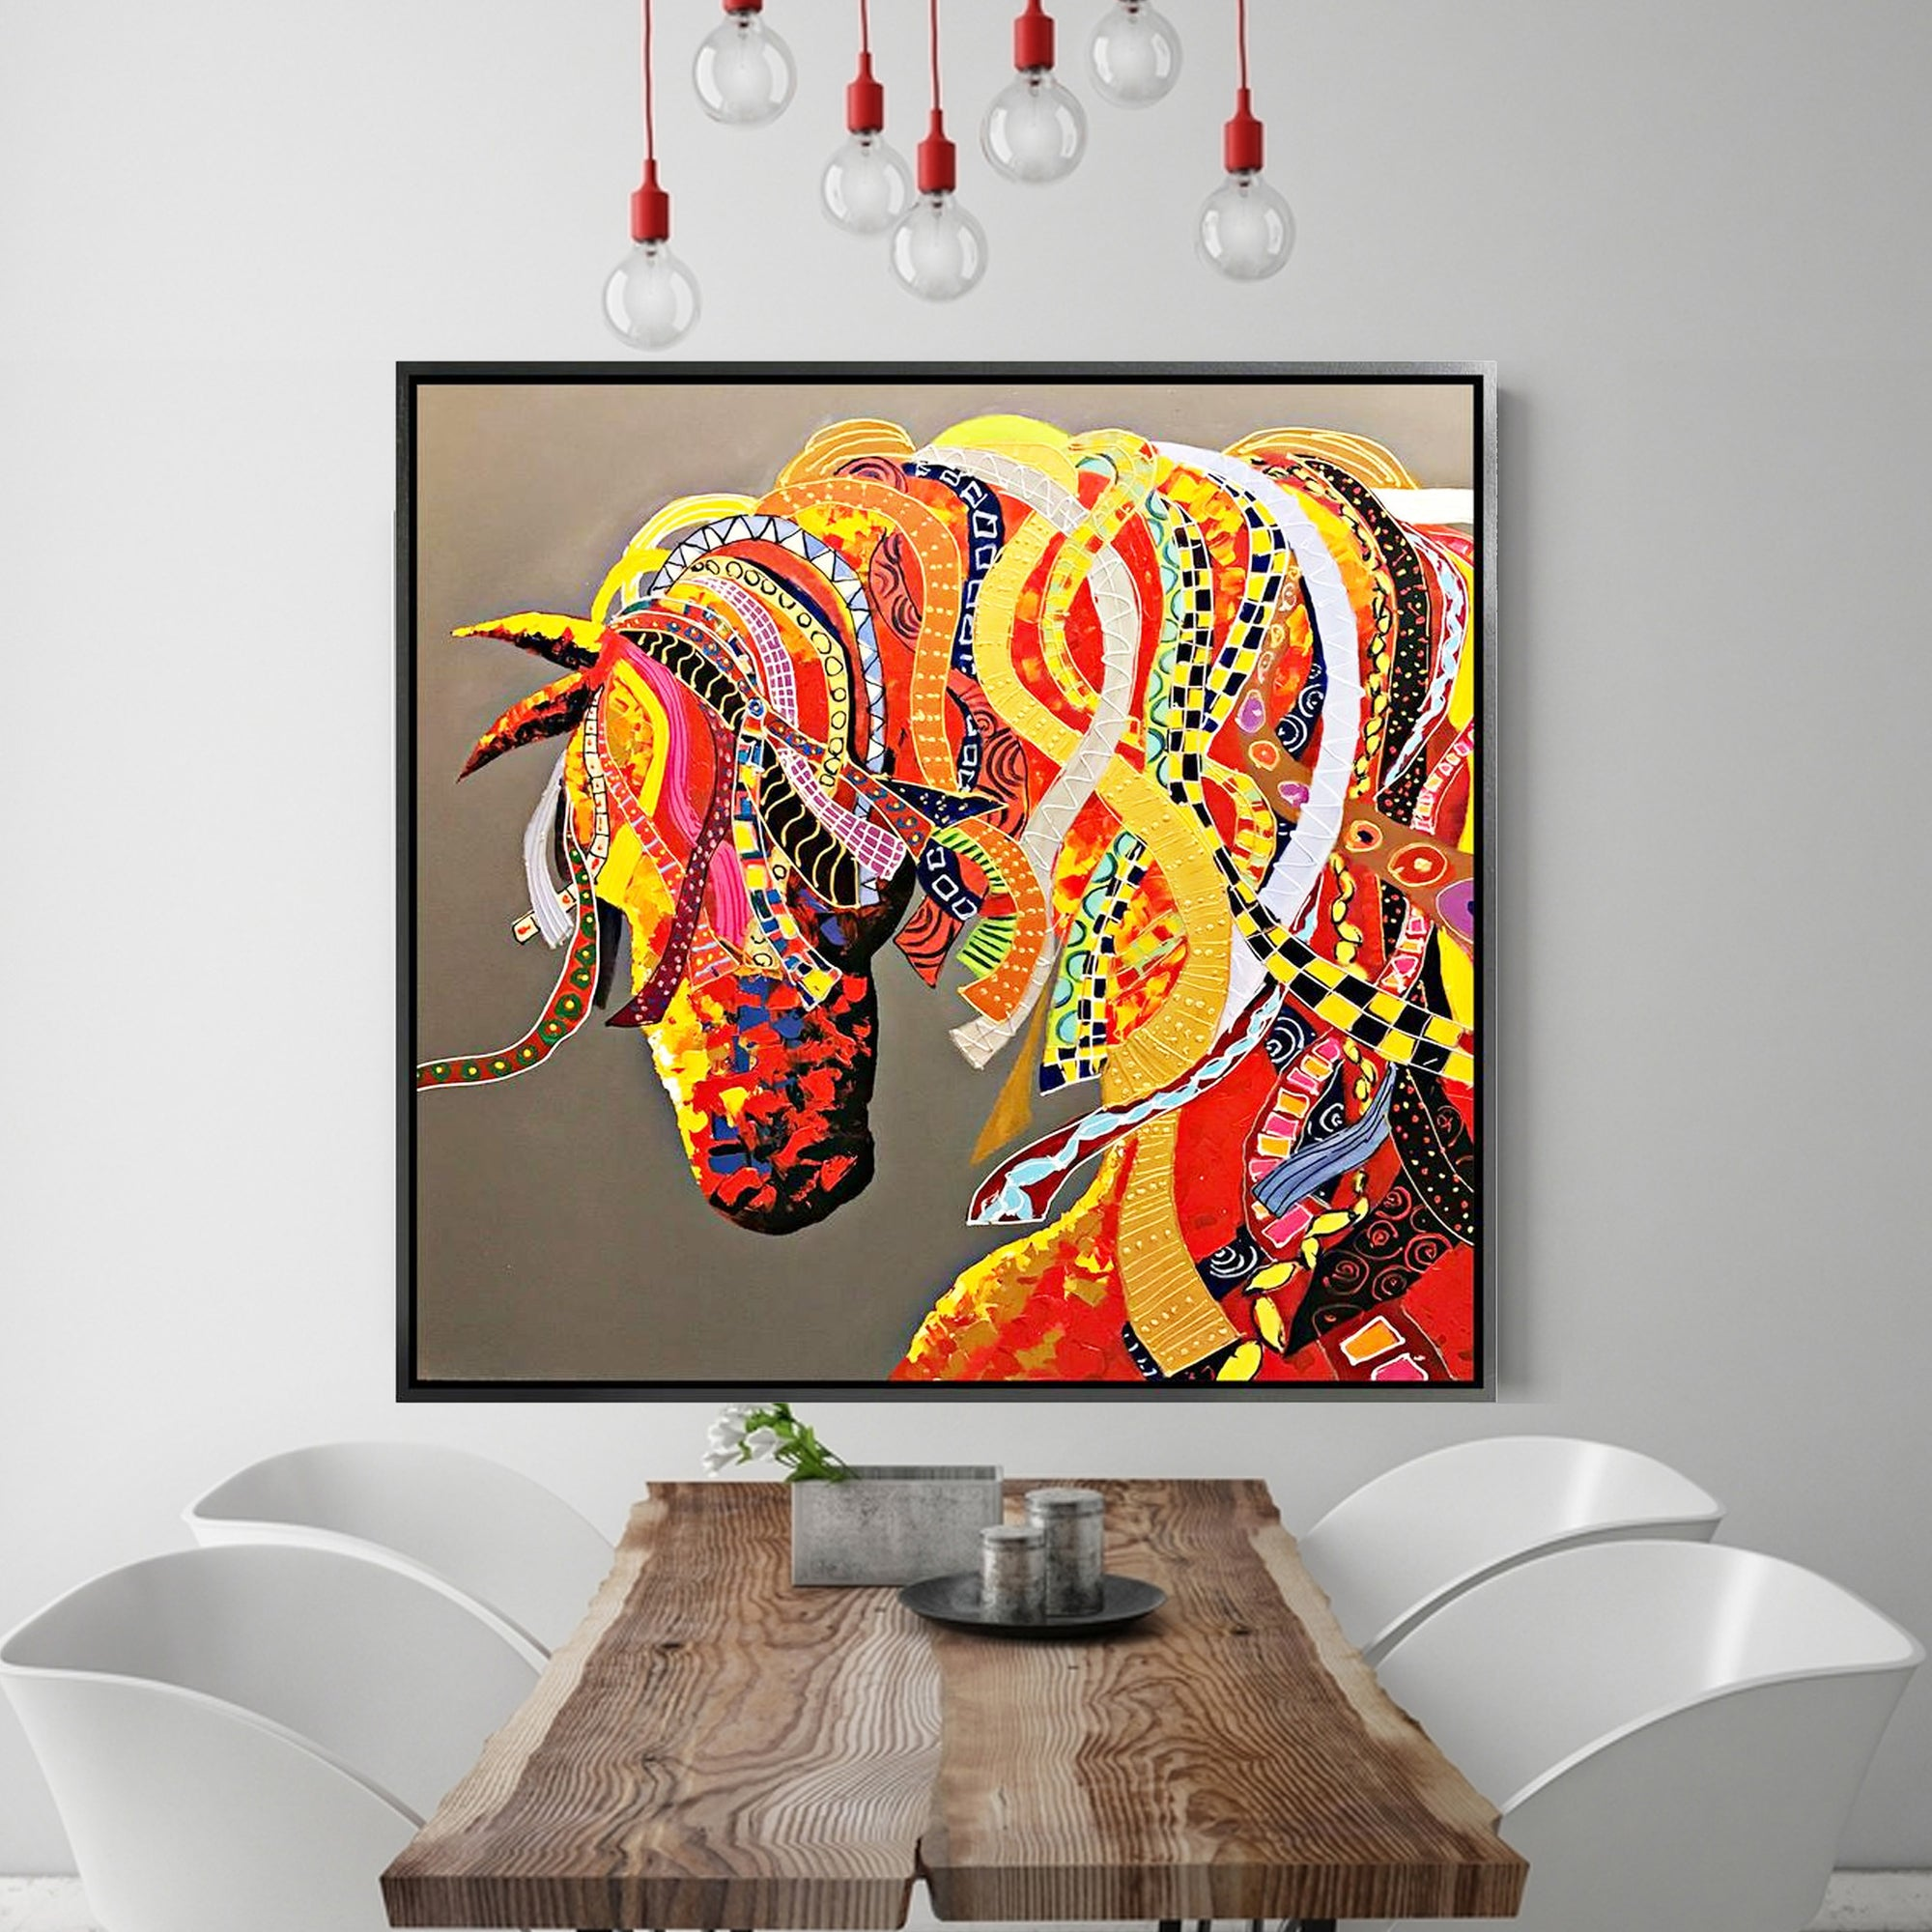 Painting - Handpainted Art Painting With Aluminum Frame 105x105cm PNH005